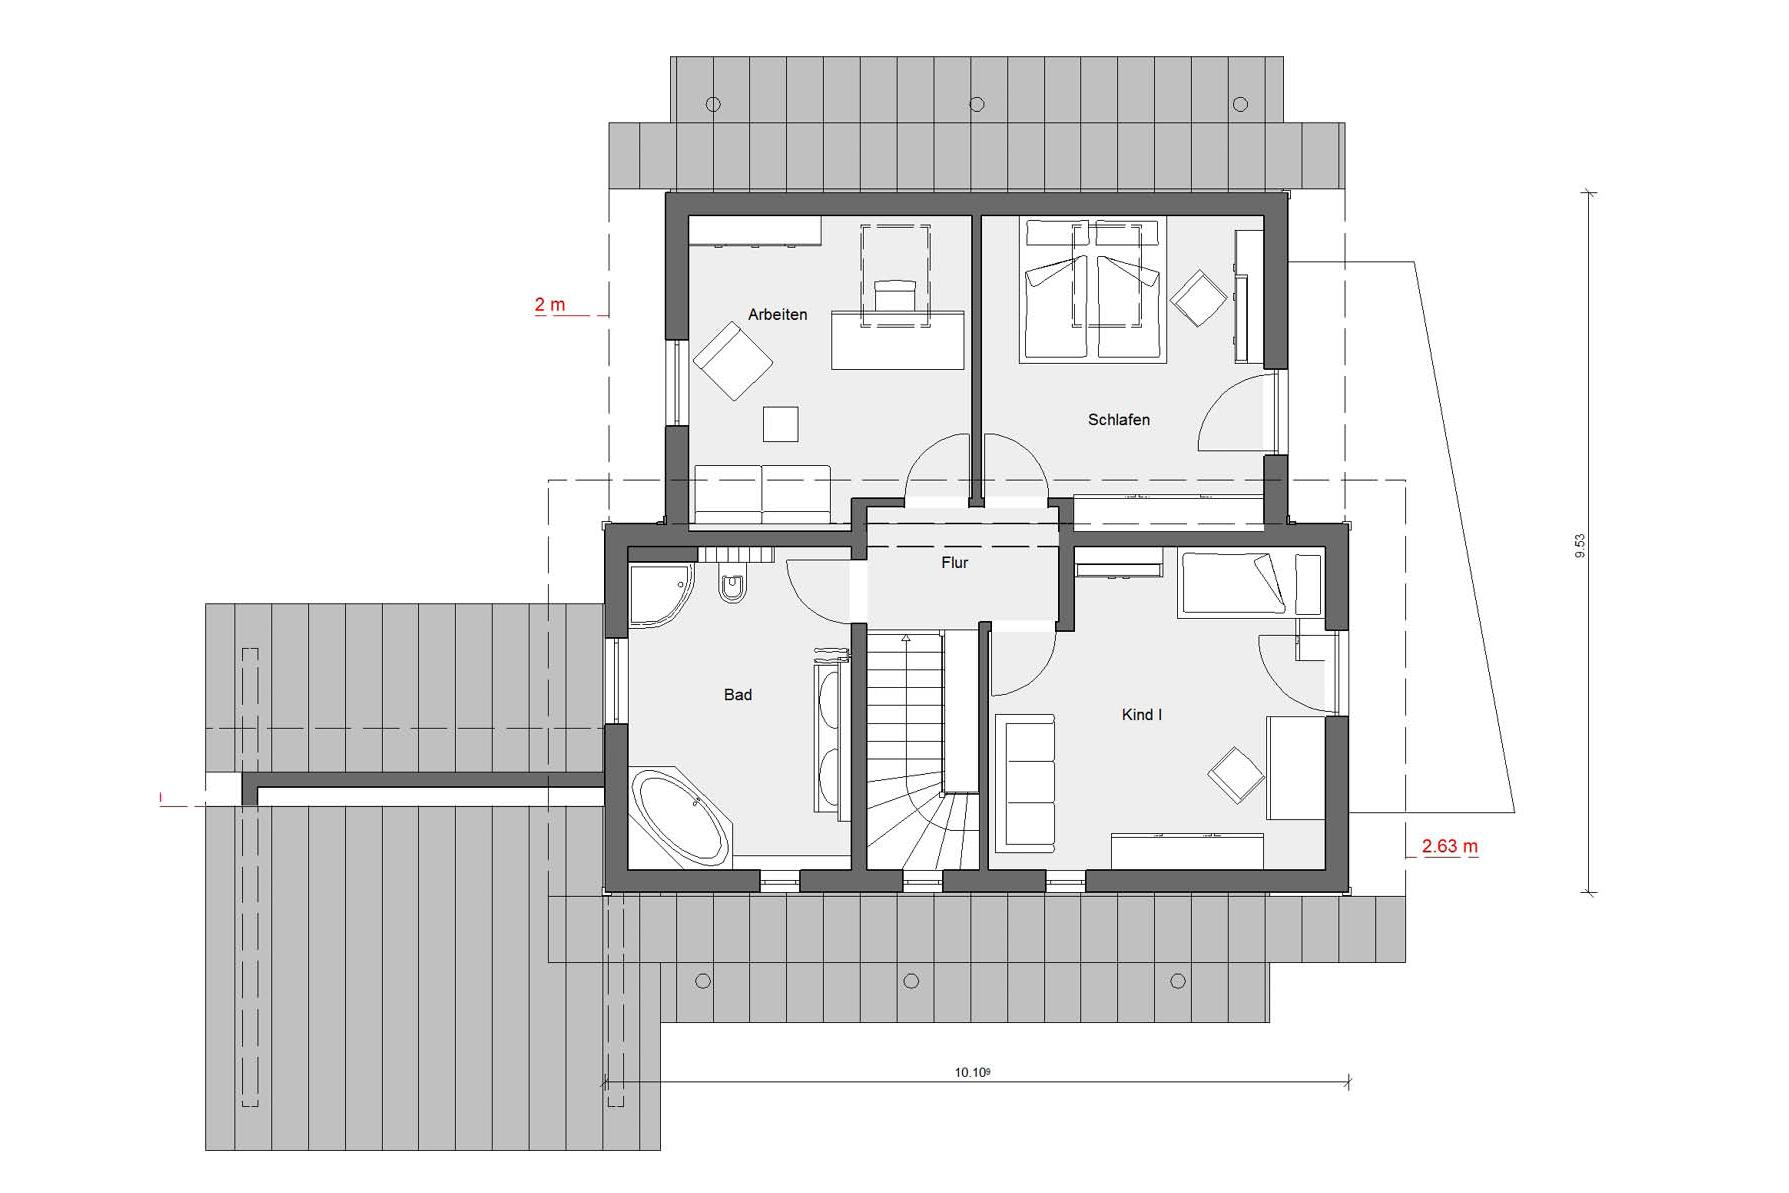 plan de sol d'auvert Young Family Home 1